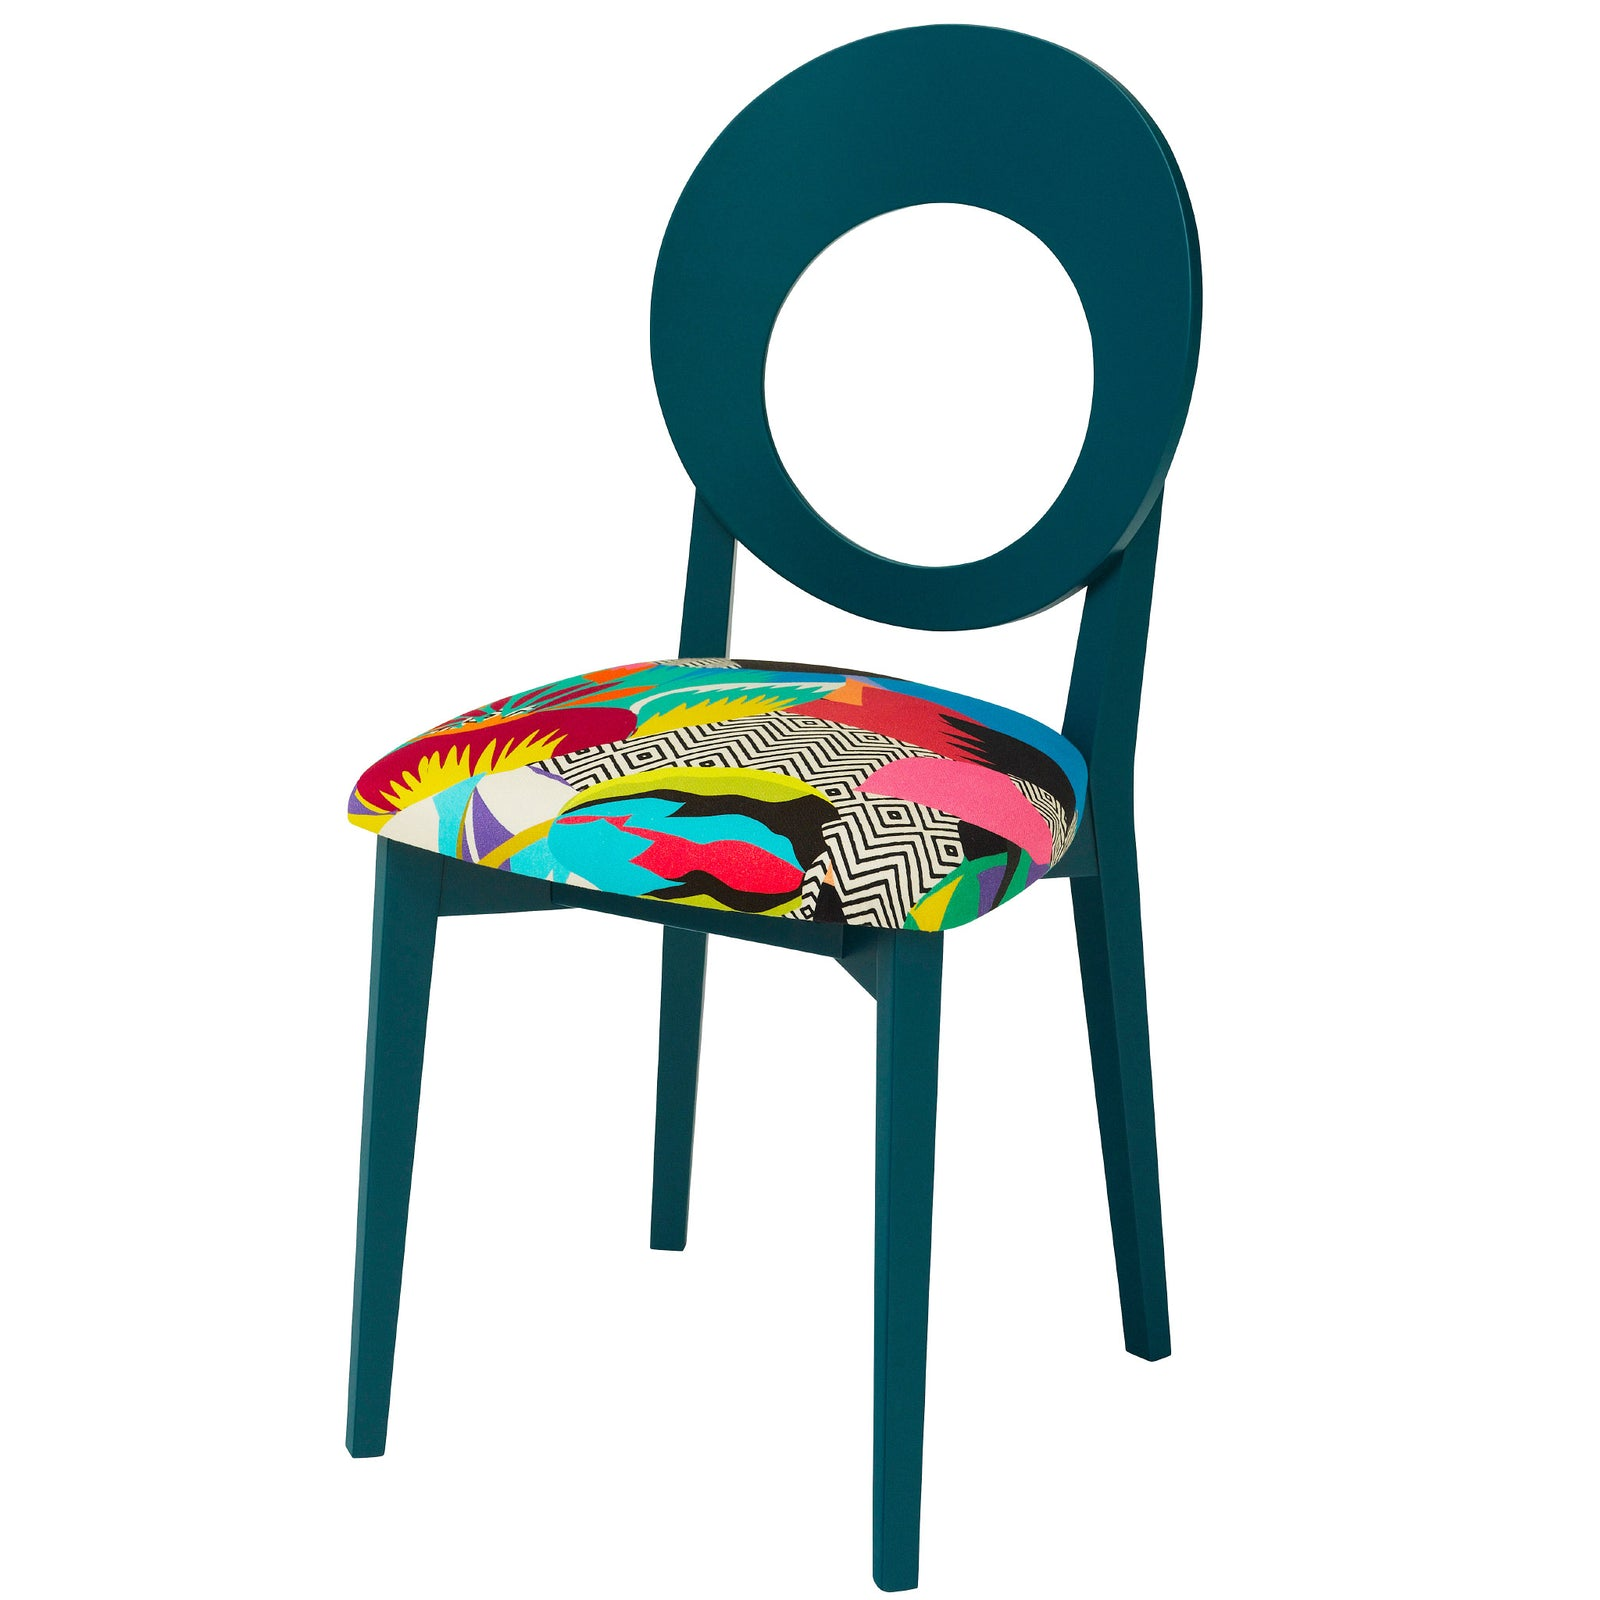 Chloe Contemporary Chair in the Colourful Tropicalia from Kitty Mccall Finished in Teal